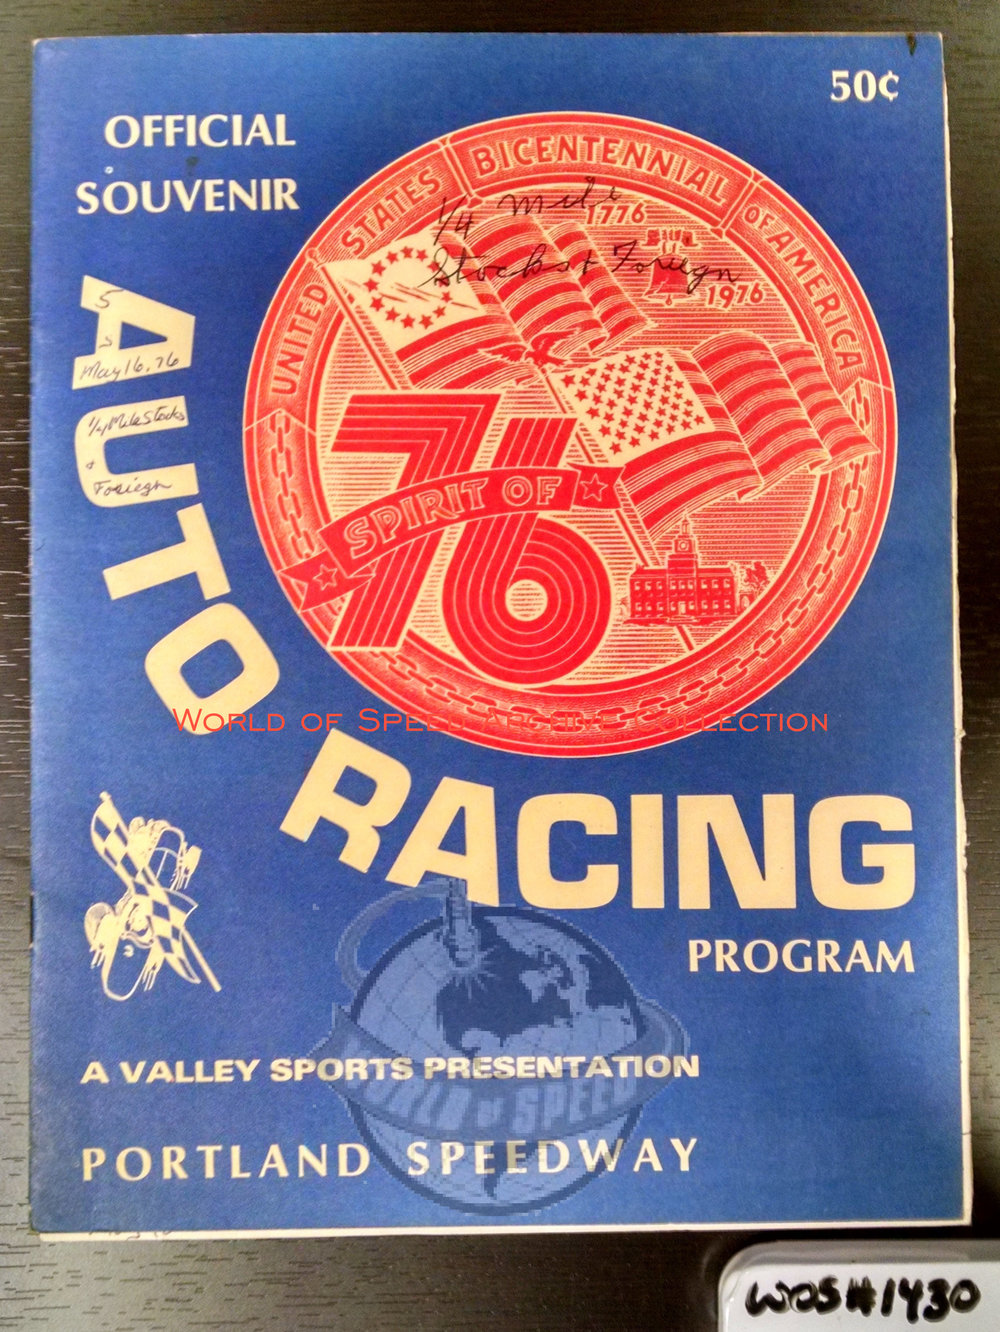 1976 program celebrates 50 years of Portland Speedway